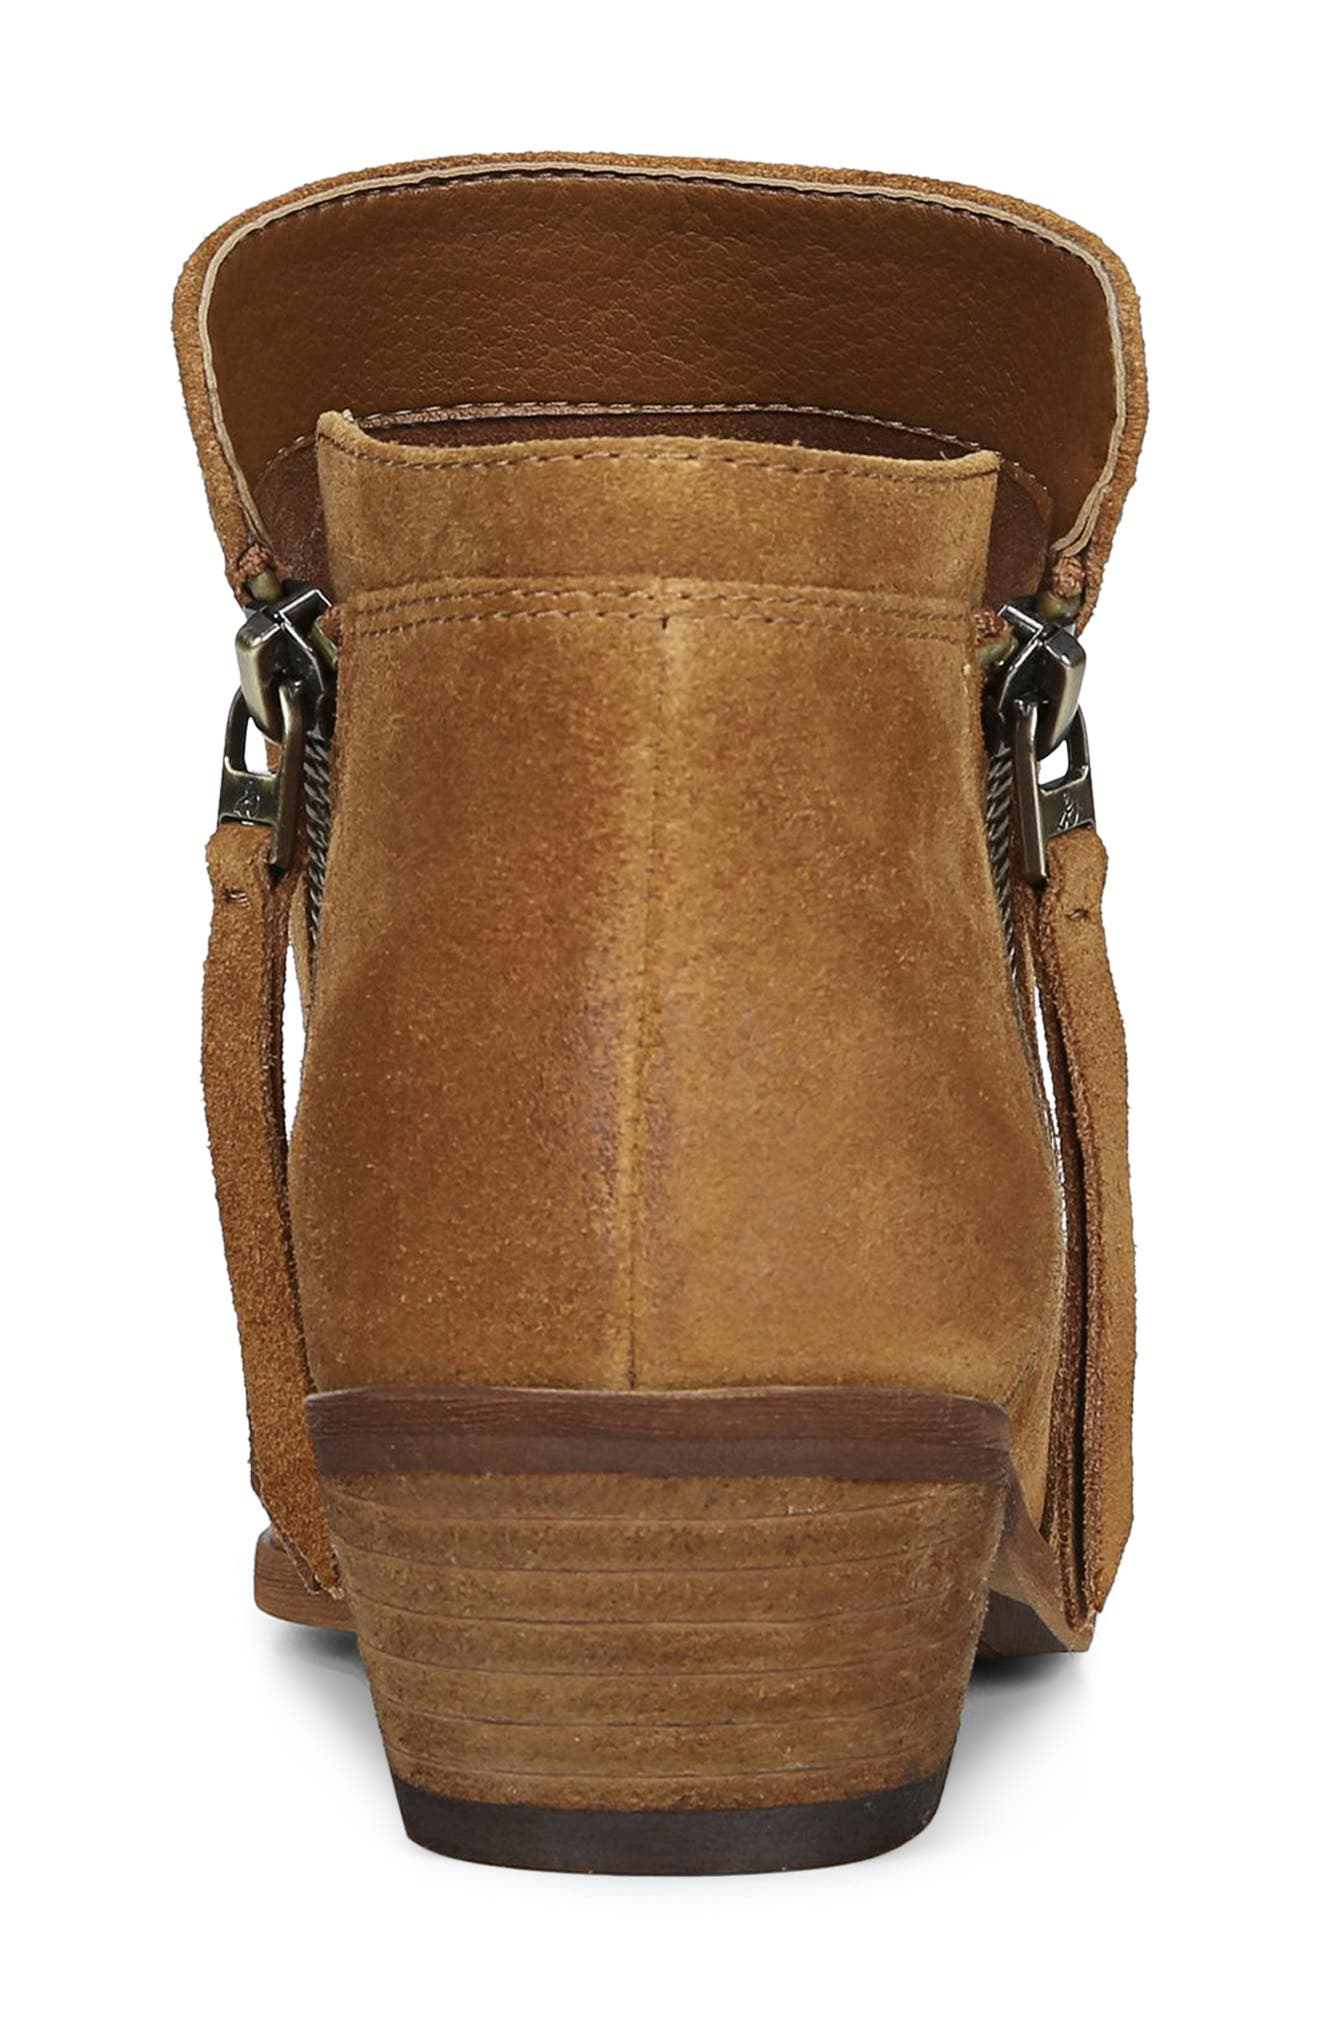 Packer Bootie,                             Alternate thumbnail 8, color,                             LUGGAGE SUEDE LEATHER